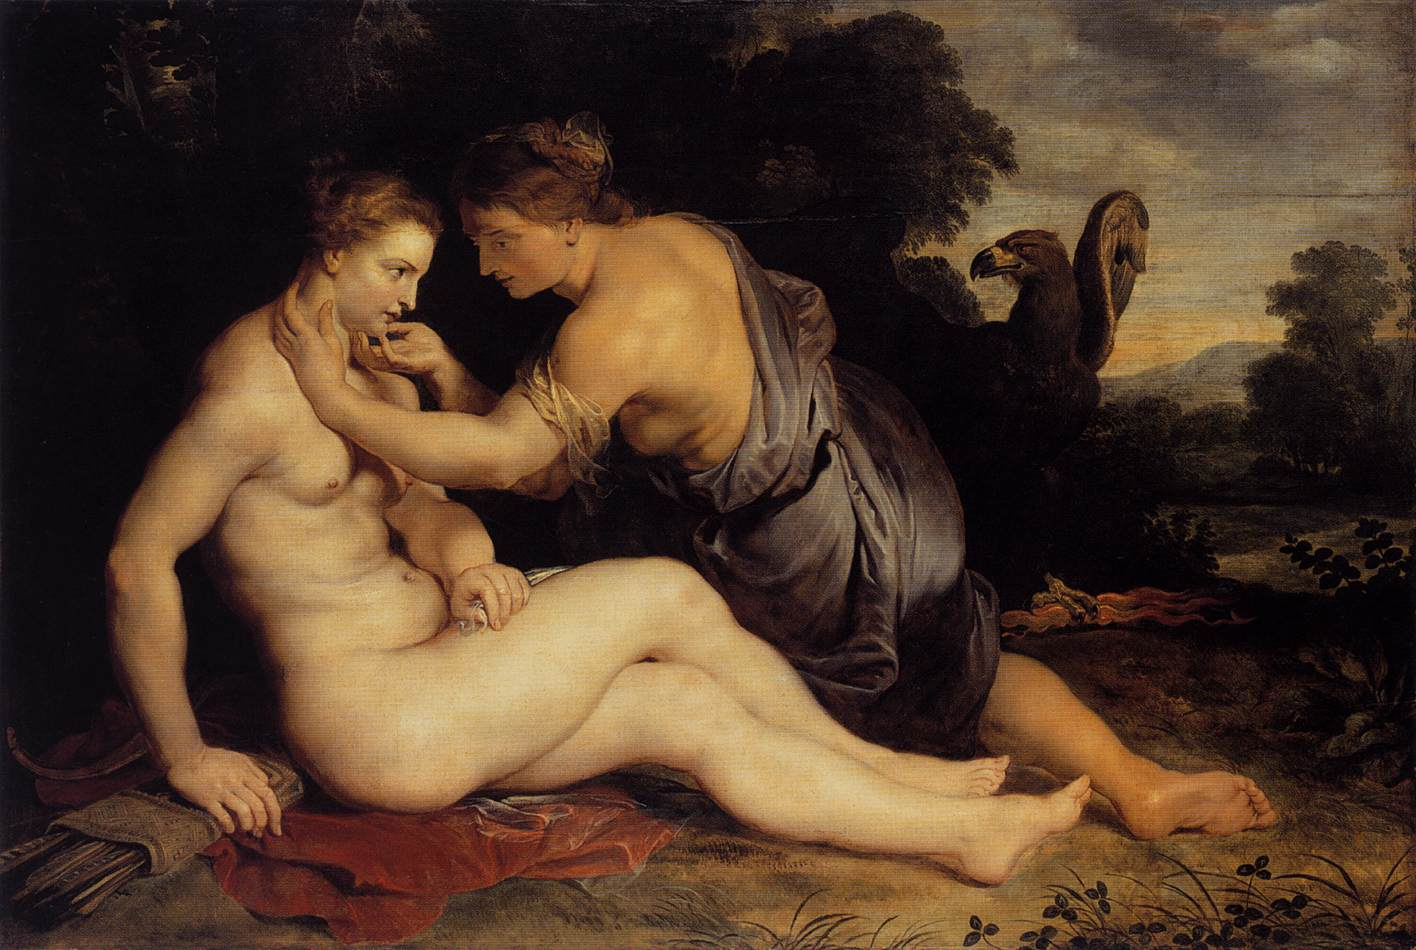 Jupiter and Callisto by Peter Paul Rubens Reproduction Oil Painting on Canvas